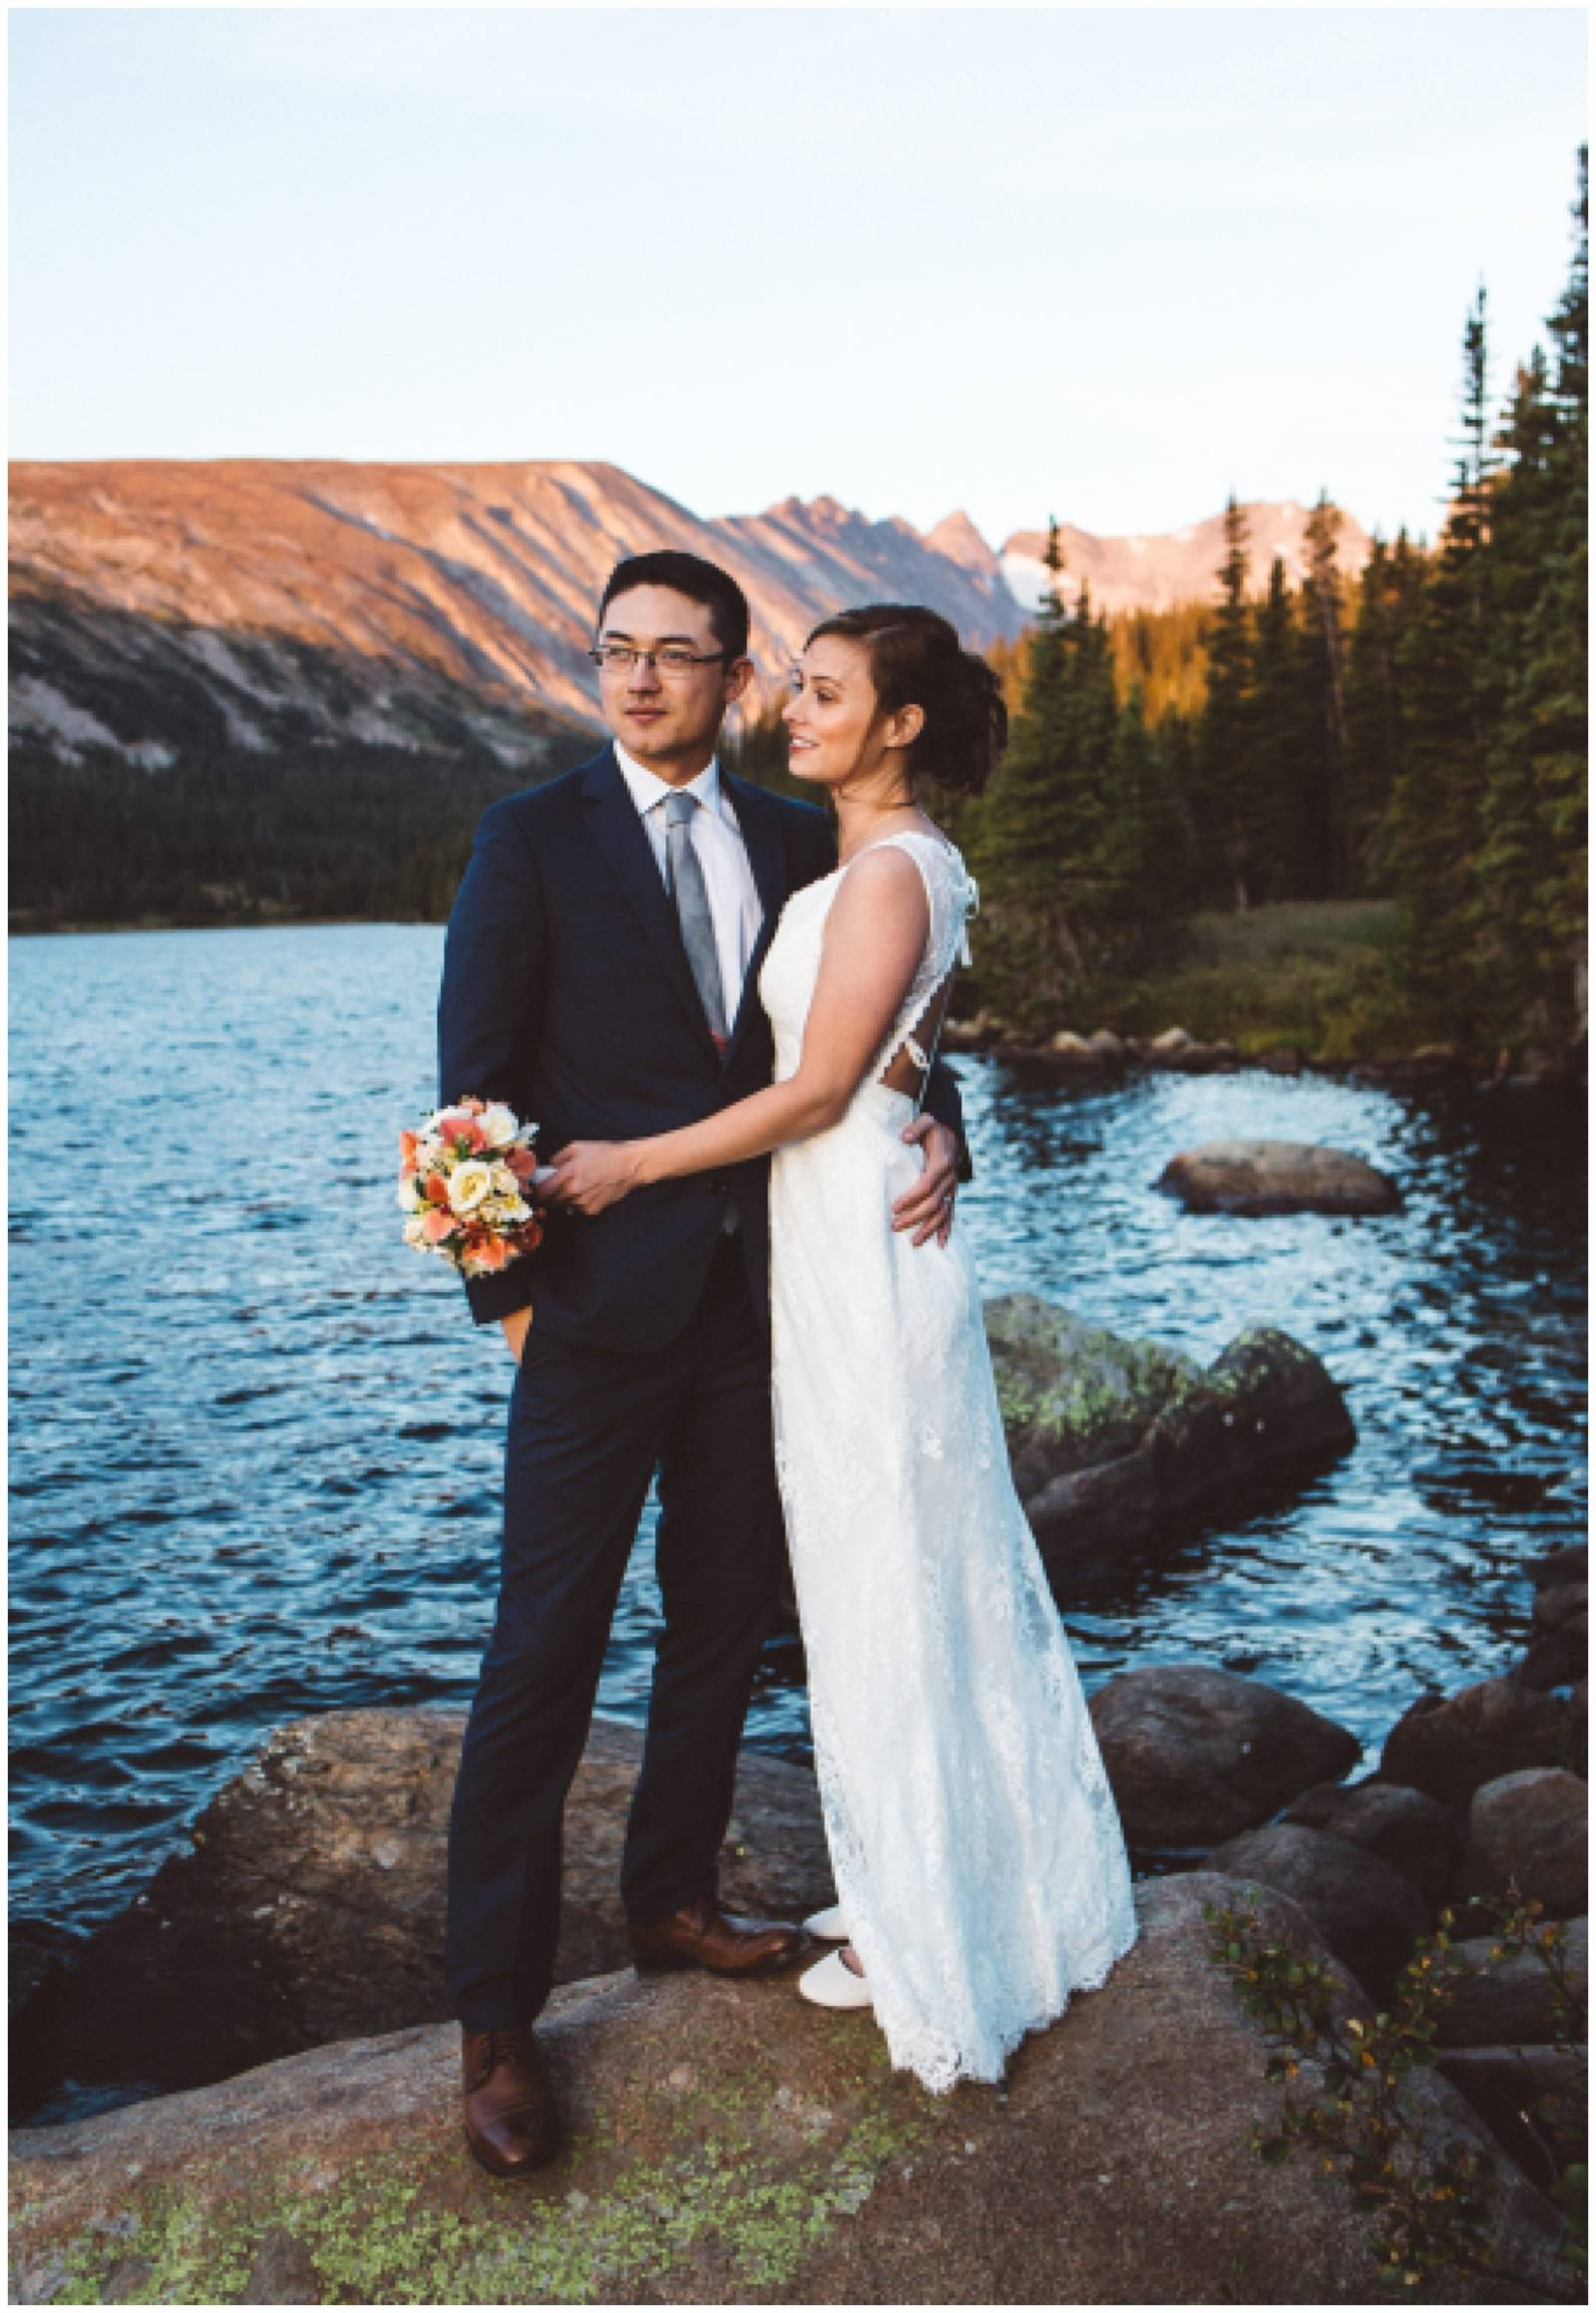 Rocky Mountain destination wedding at sunset | portrait of bride and groom by Shayla Velazquez Photo